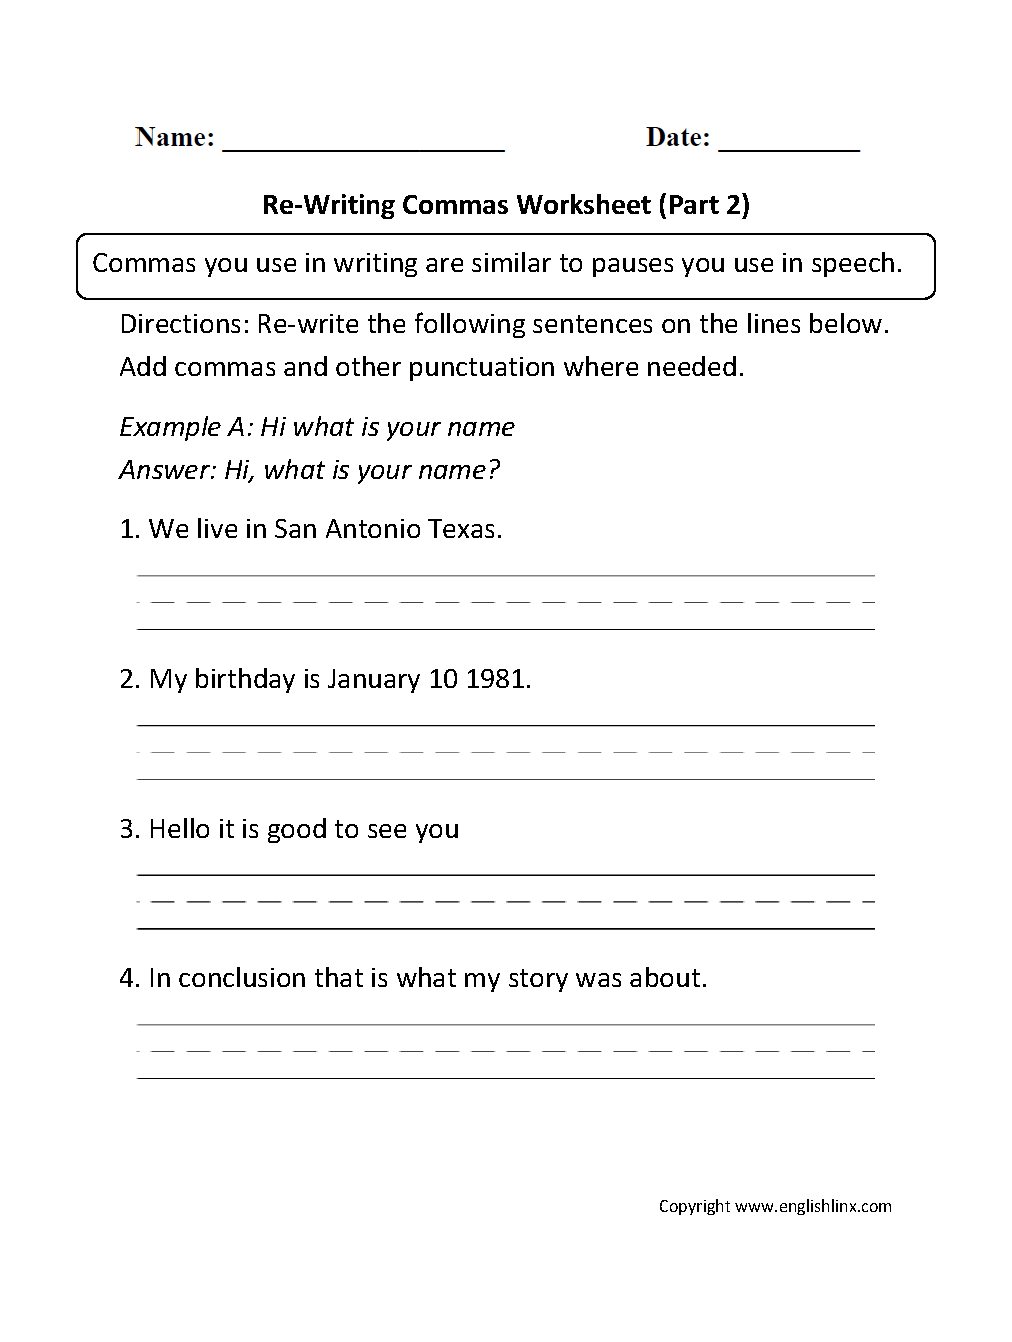 worksheet Comma Usage Worksheet re writing commas worksheets part 2 english worksheets